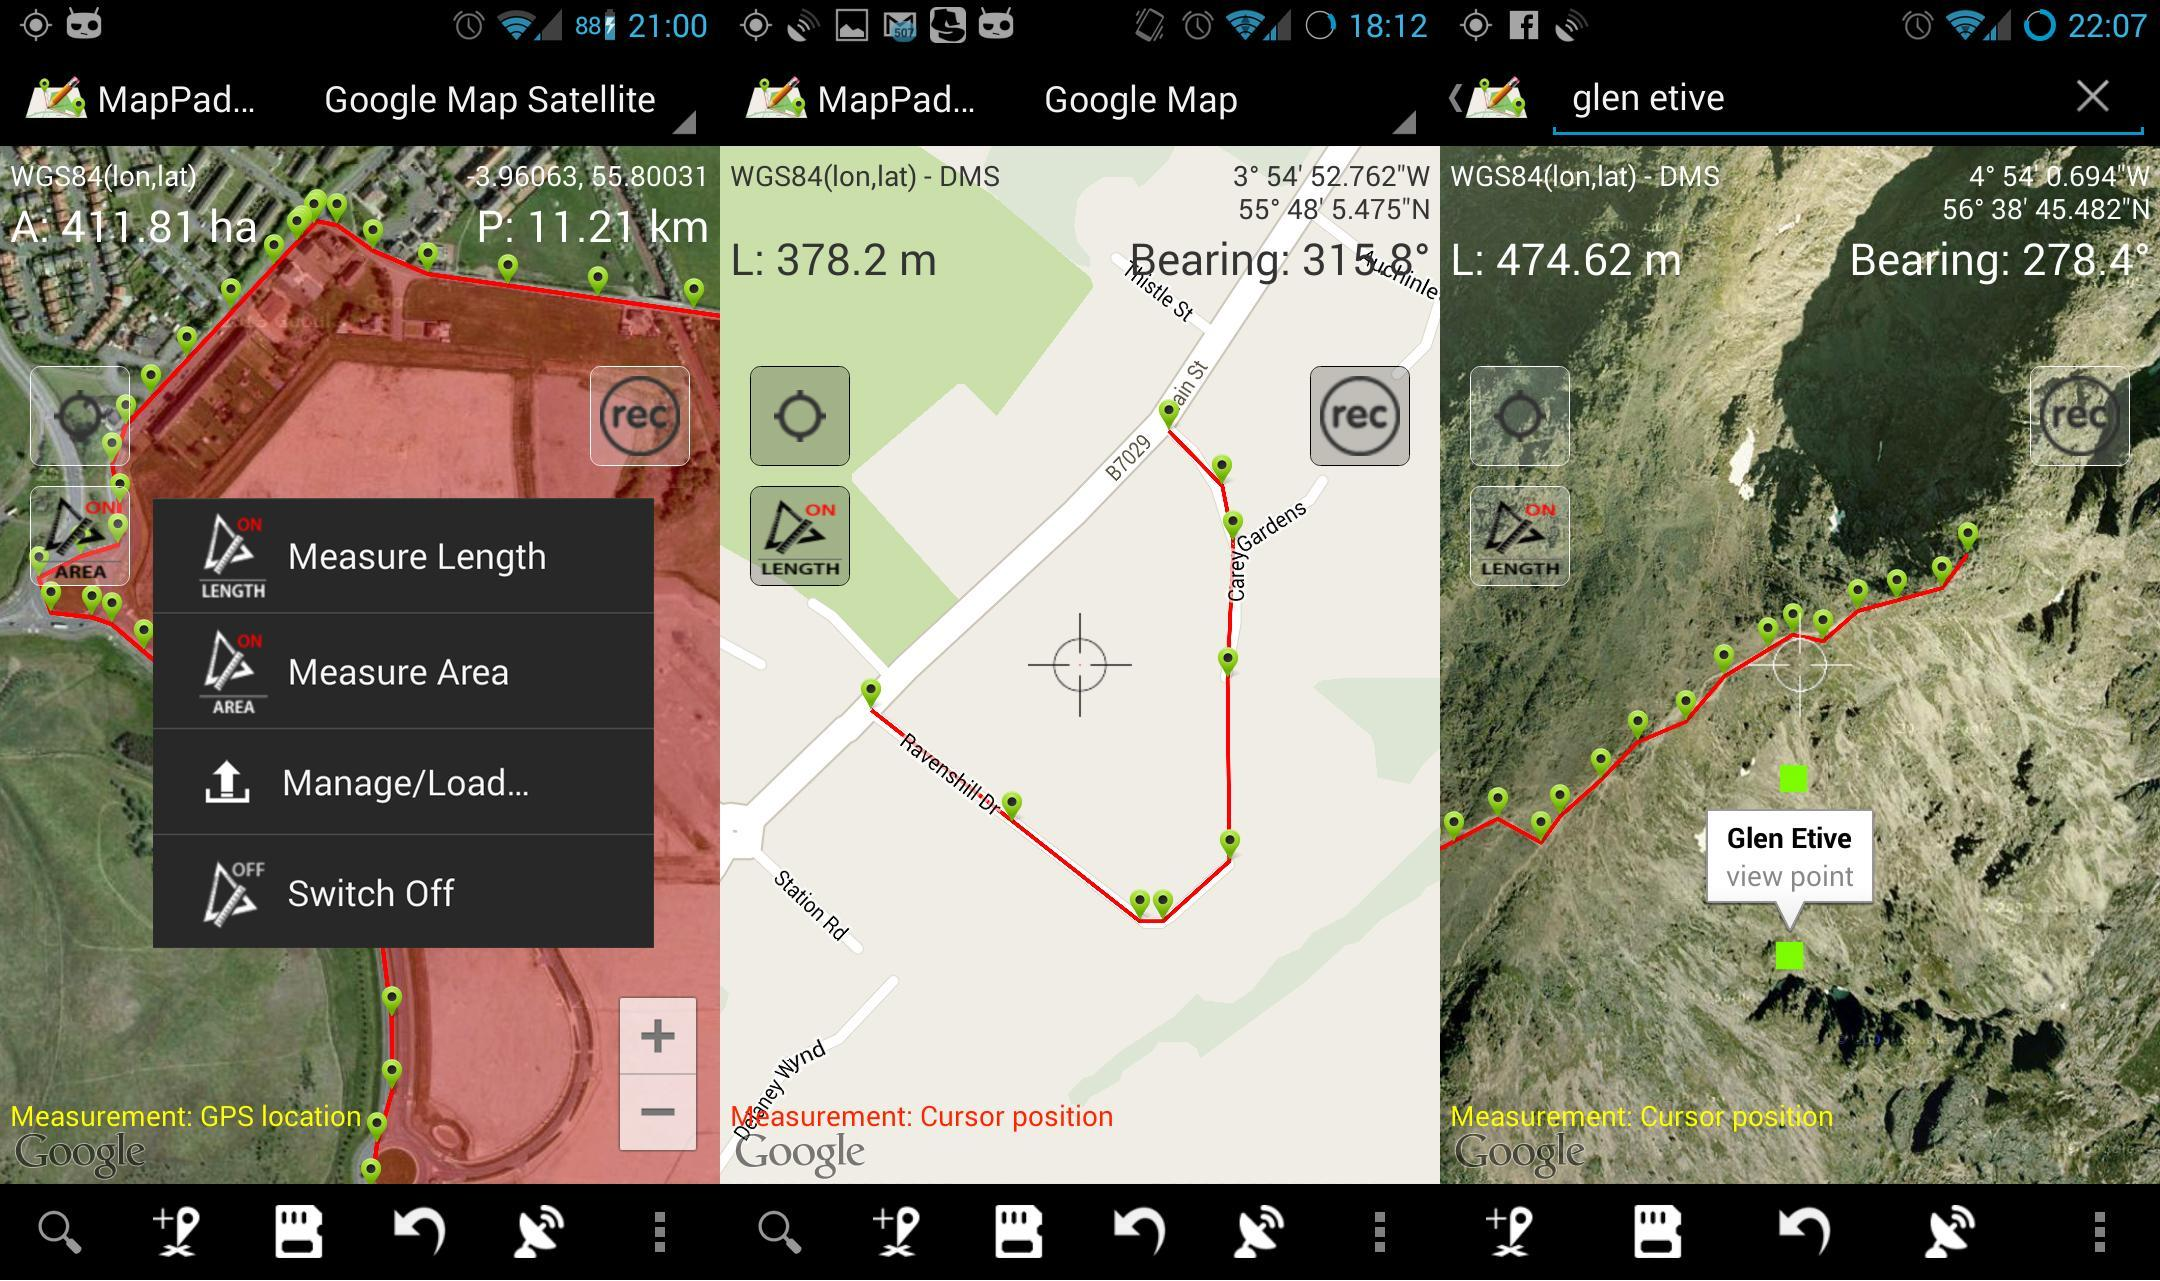 Map Pad GPS Land Surveys & Measurements for Android - APK